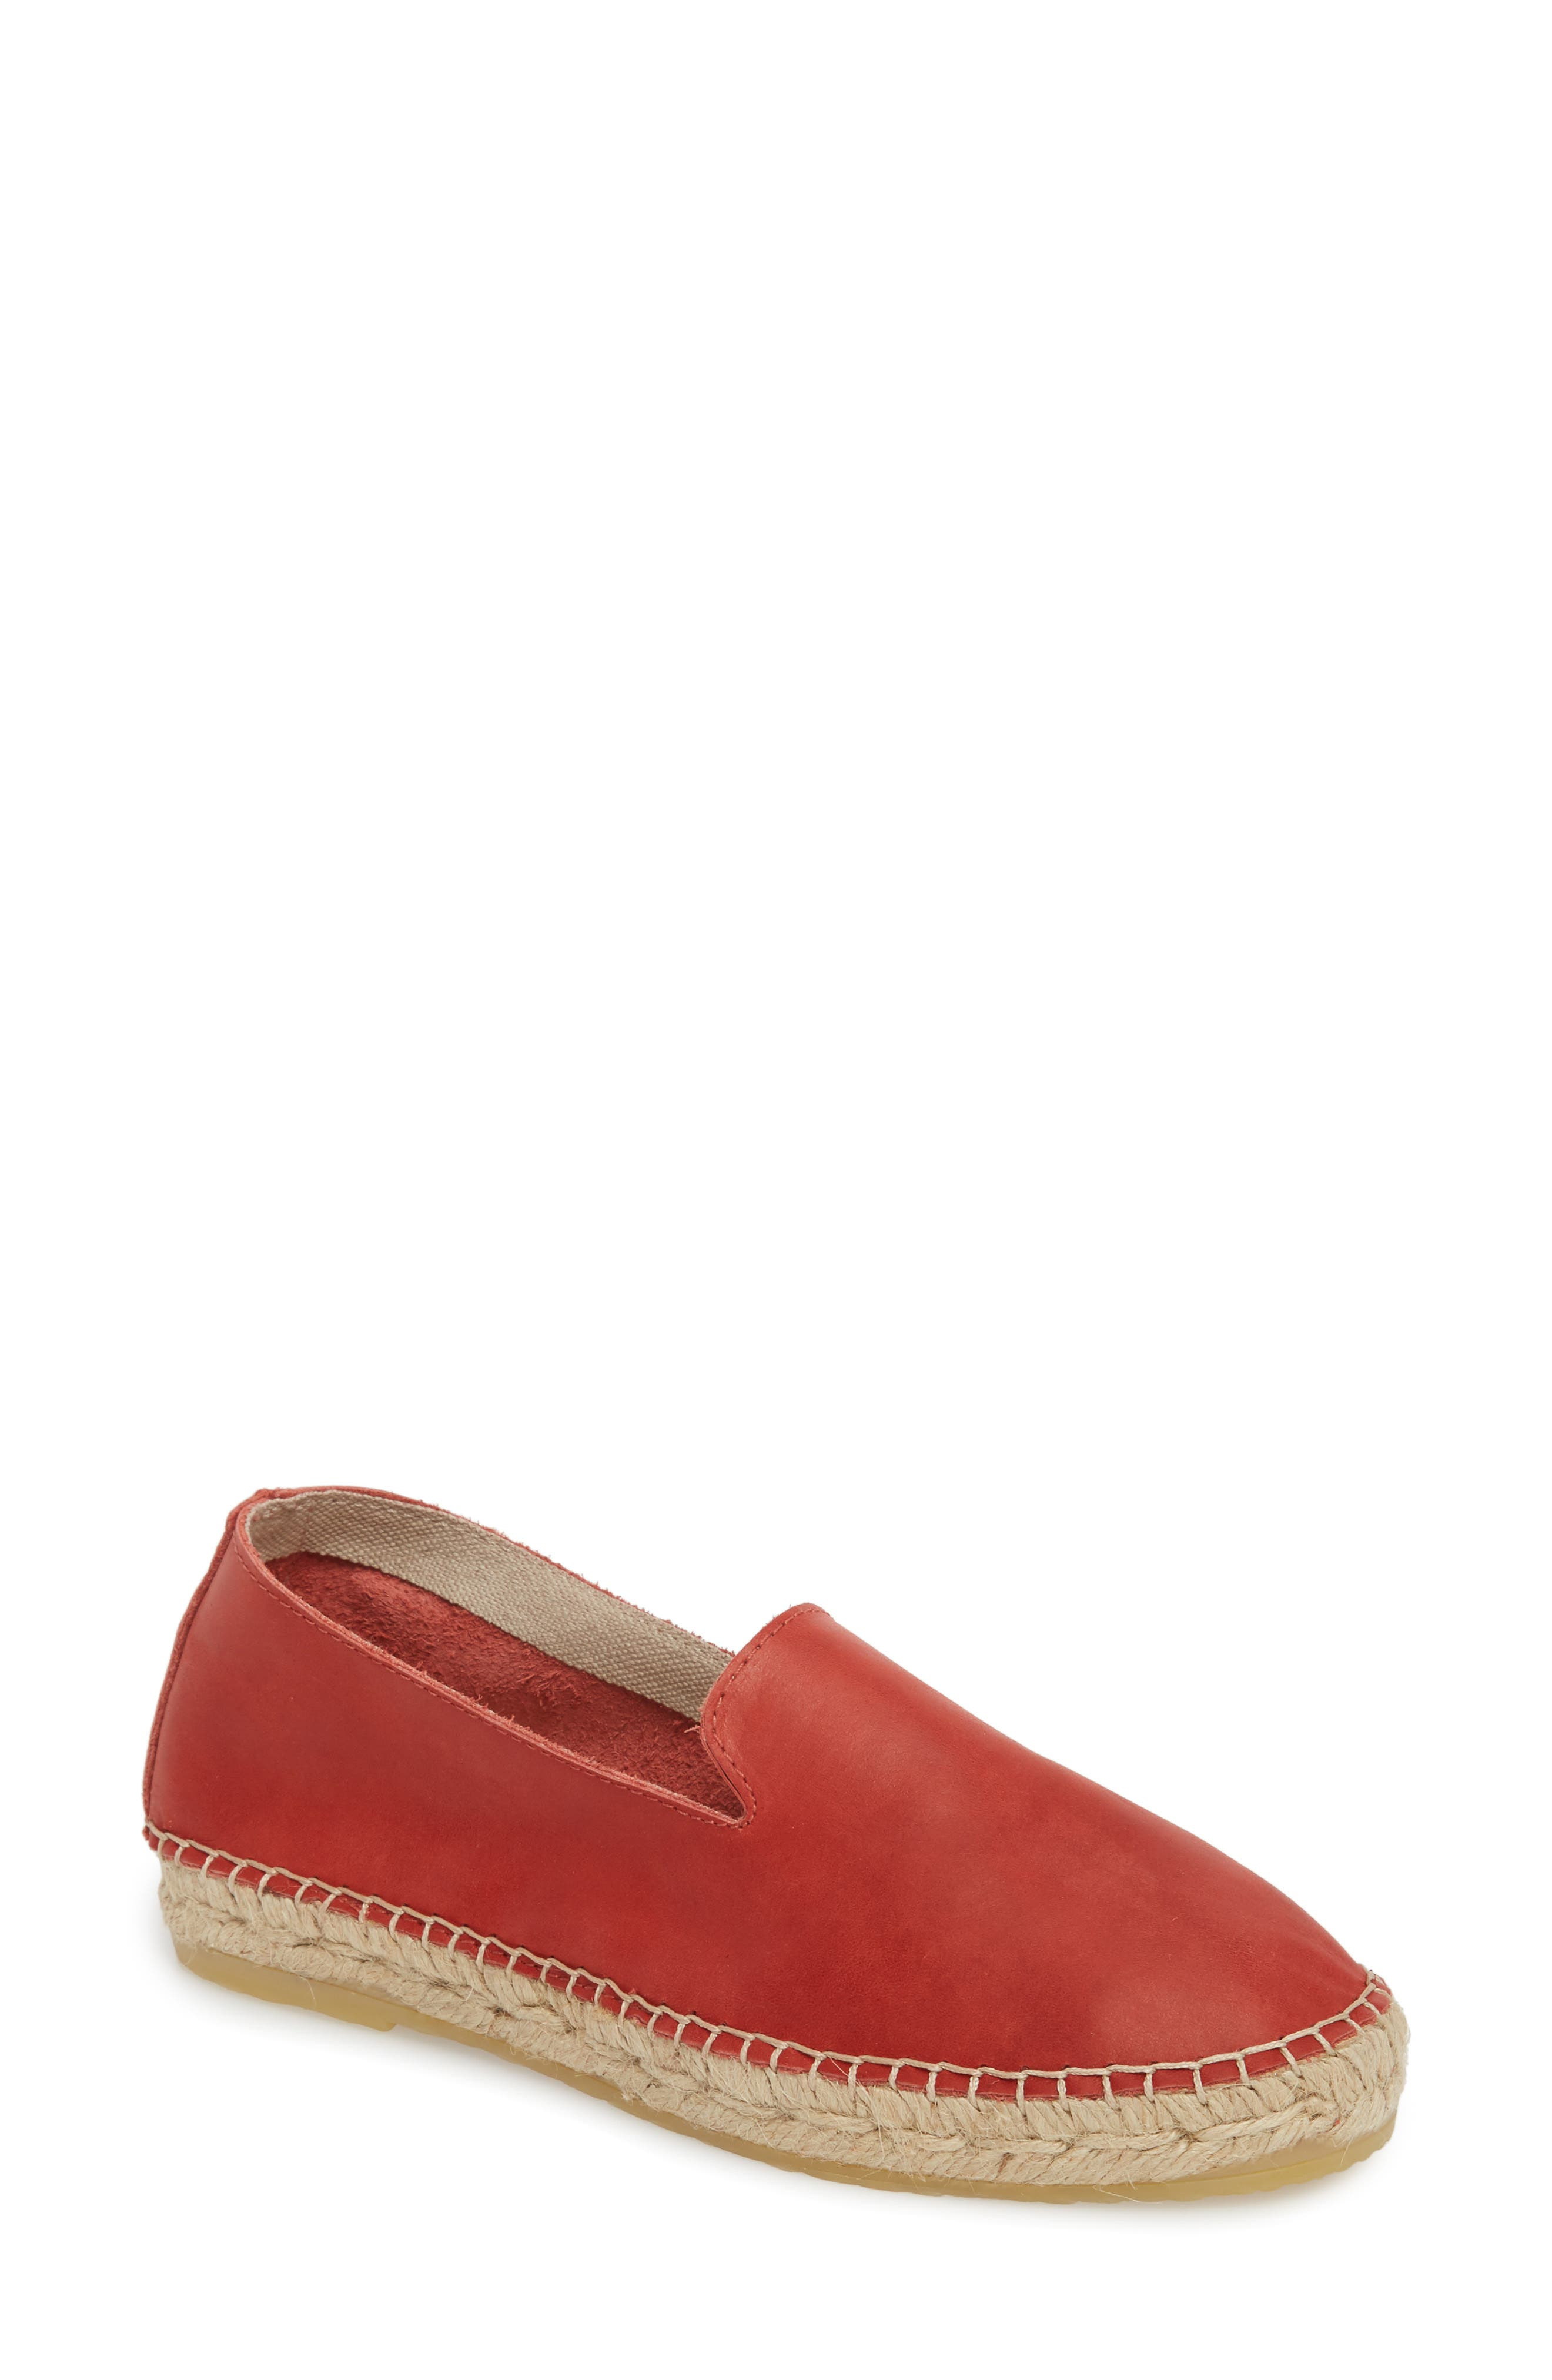 Laurel Canyon Espadrille Slip-On,                             Main thumbnail 1, color,                             RED